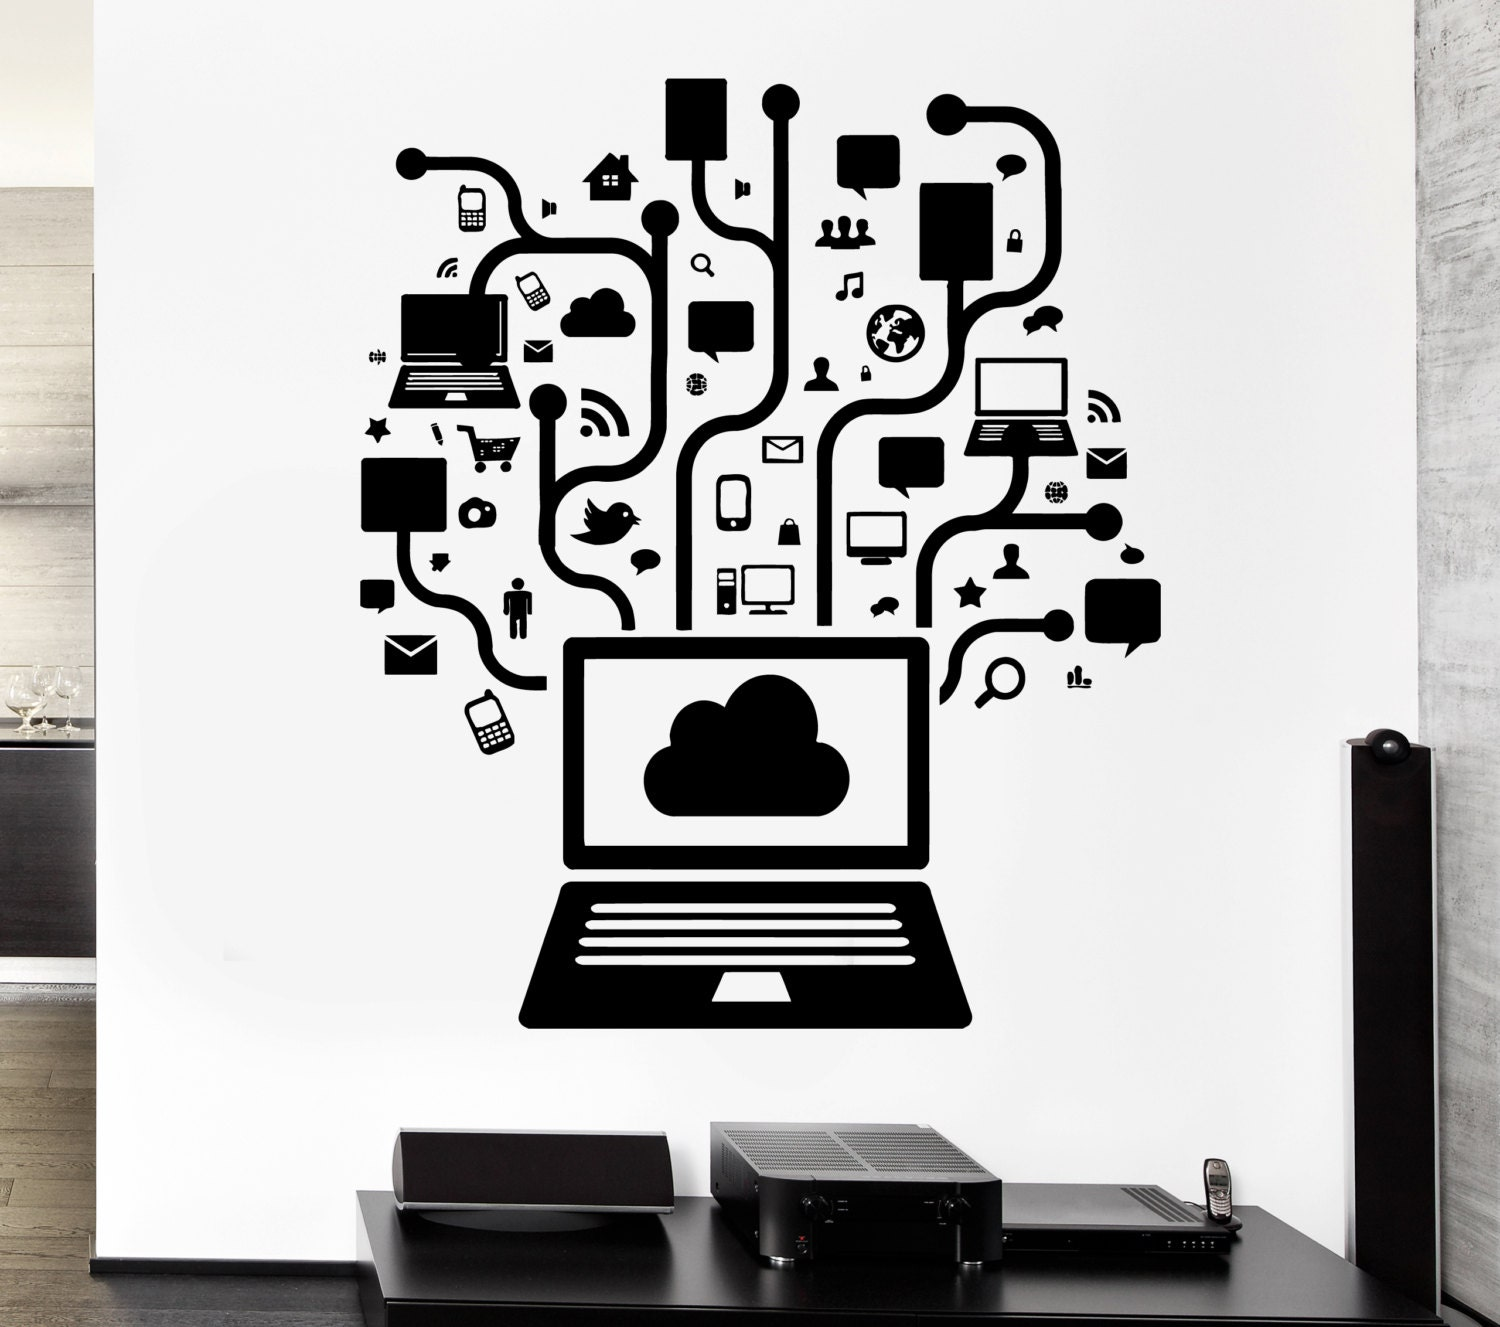 Wall Decal Gamer Online Social Network Gaming Internet Teen